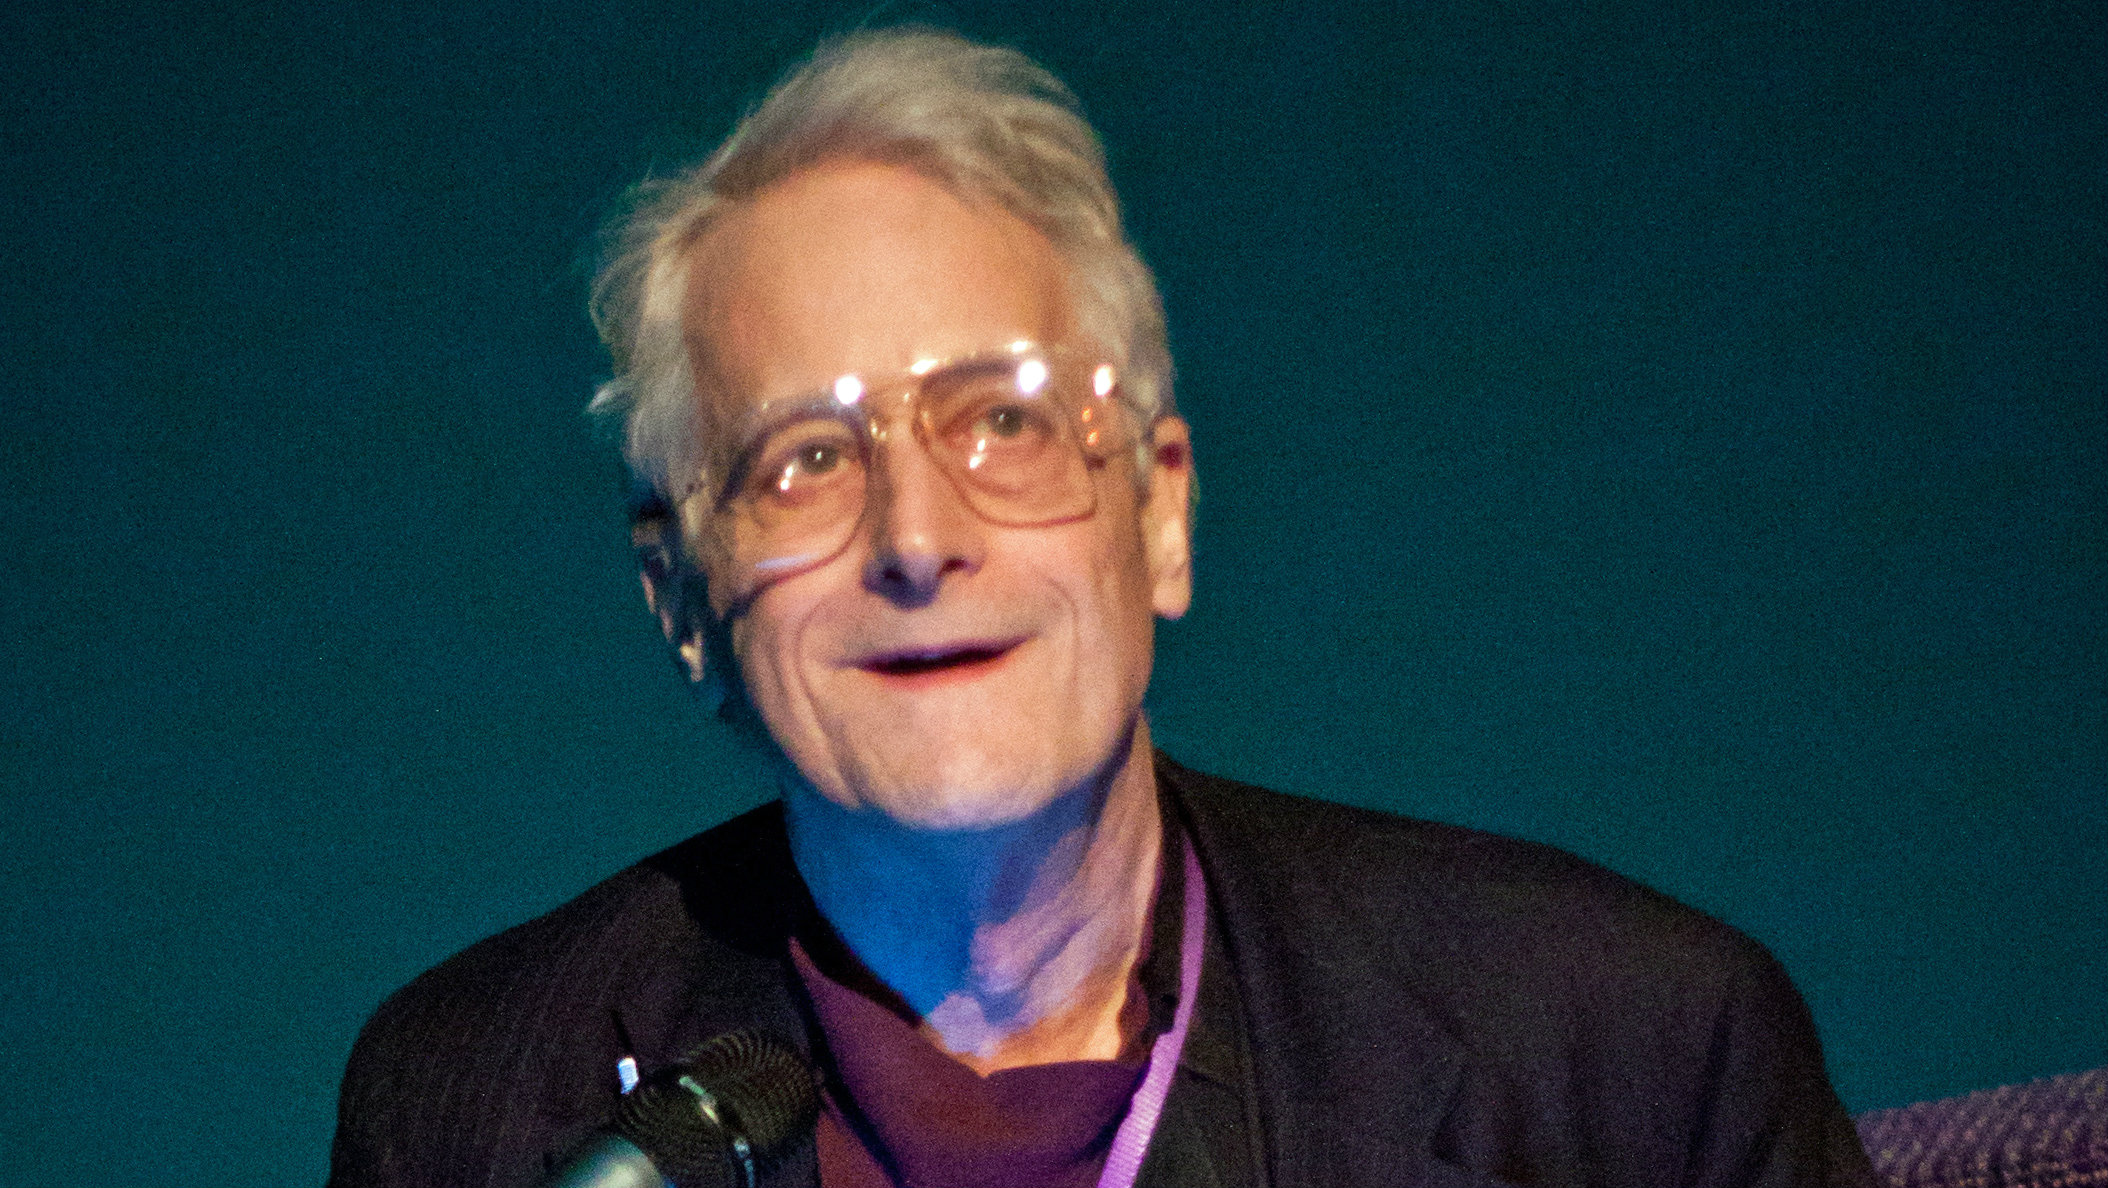 Ted Nelson gives a presentation on Project Xanadu for SuperHappyDevHouse at The Tech Museum of Innovation on February 19th, 2011.